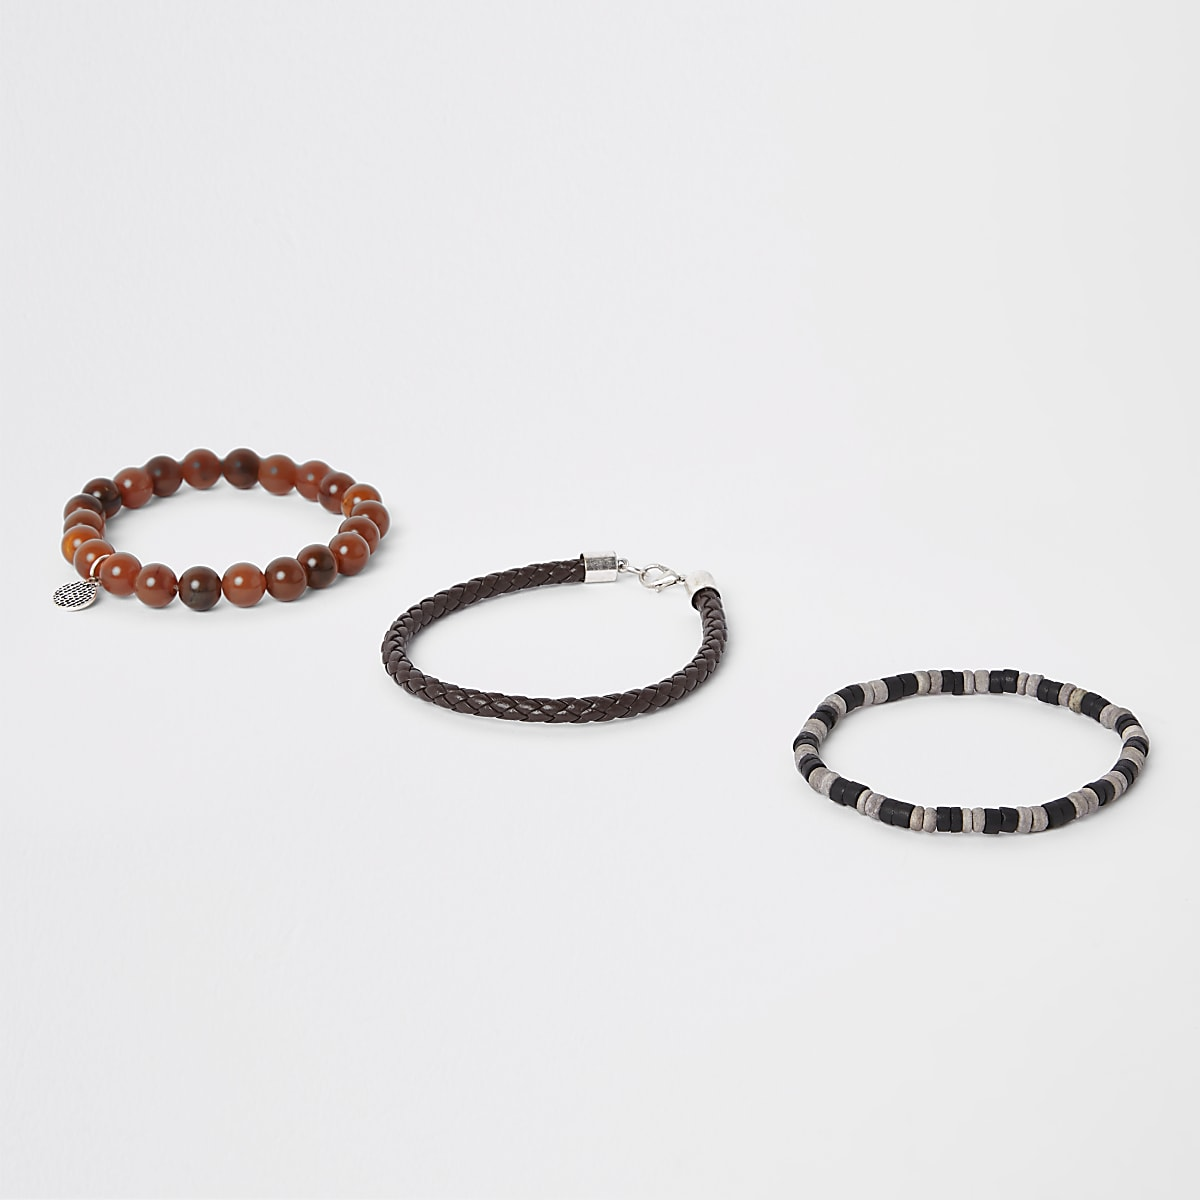 Brown bead and faux leather bracelet pack